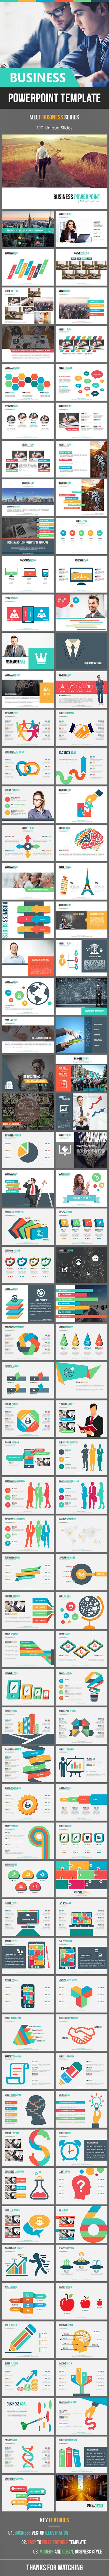 Business Powerpoint Template PowerPoint Template / Theme / Presentation / Slides / Background / Power Point #powerpoint #template #theme